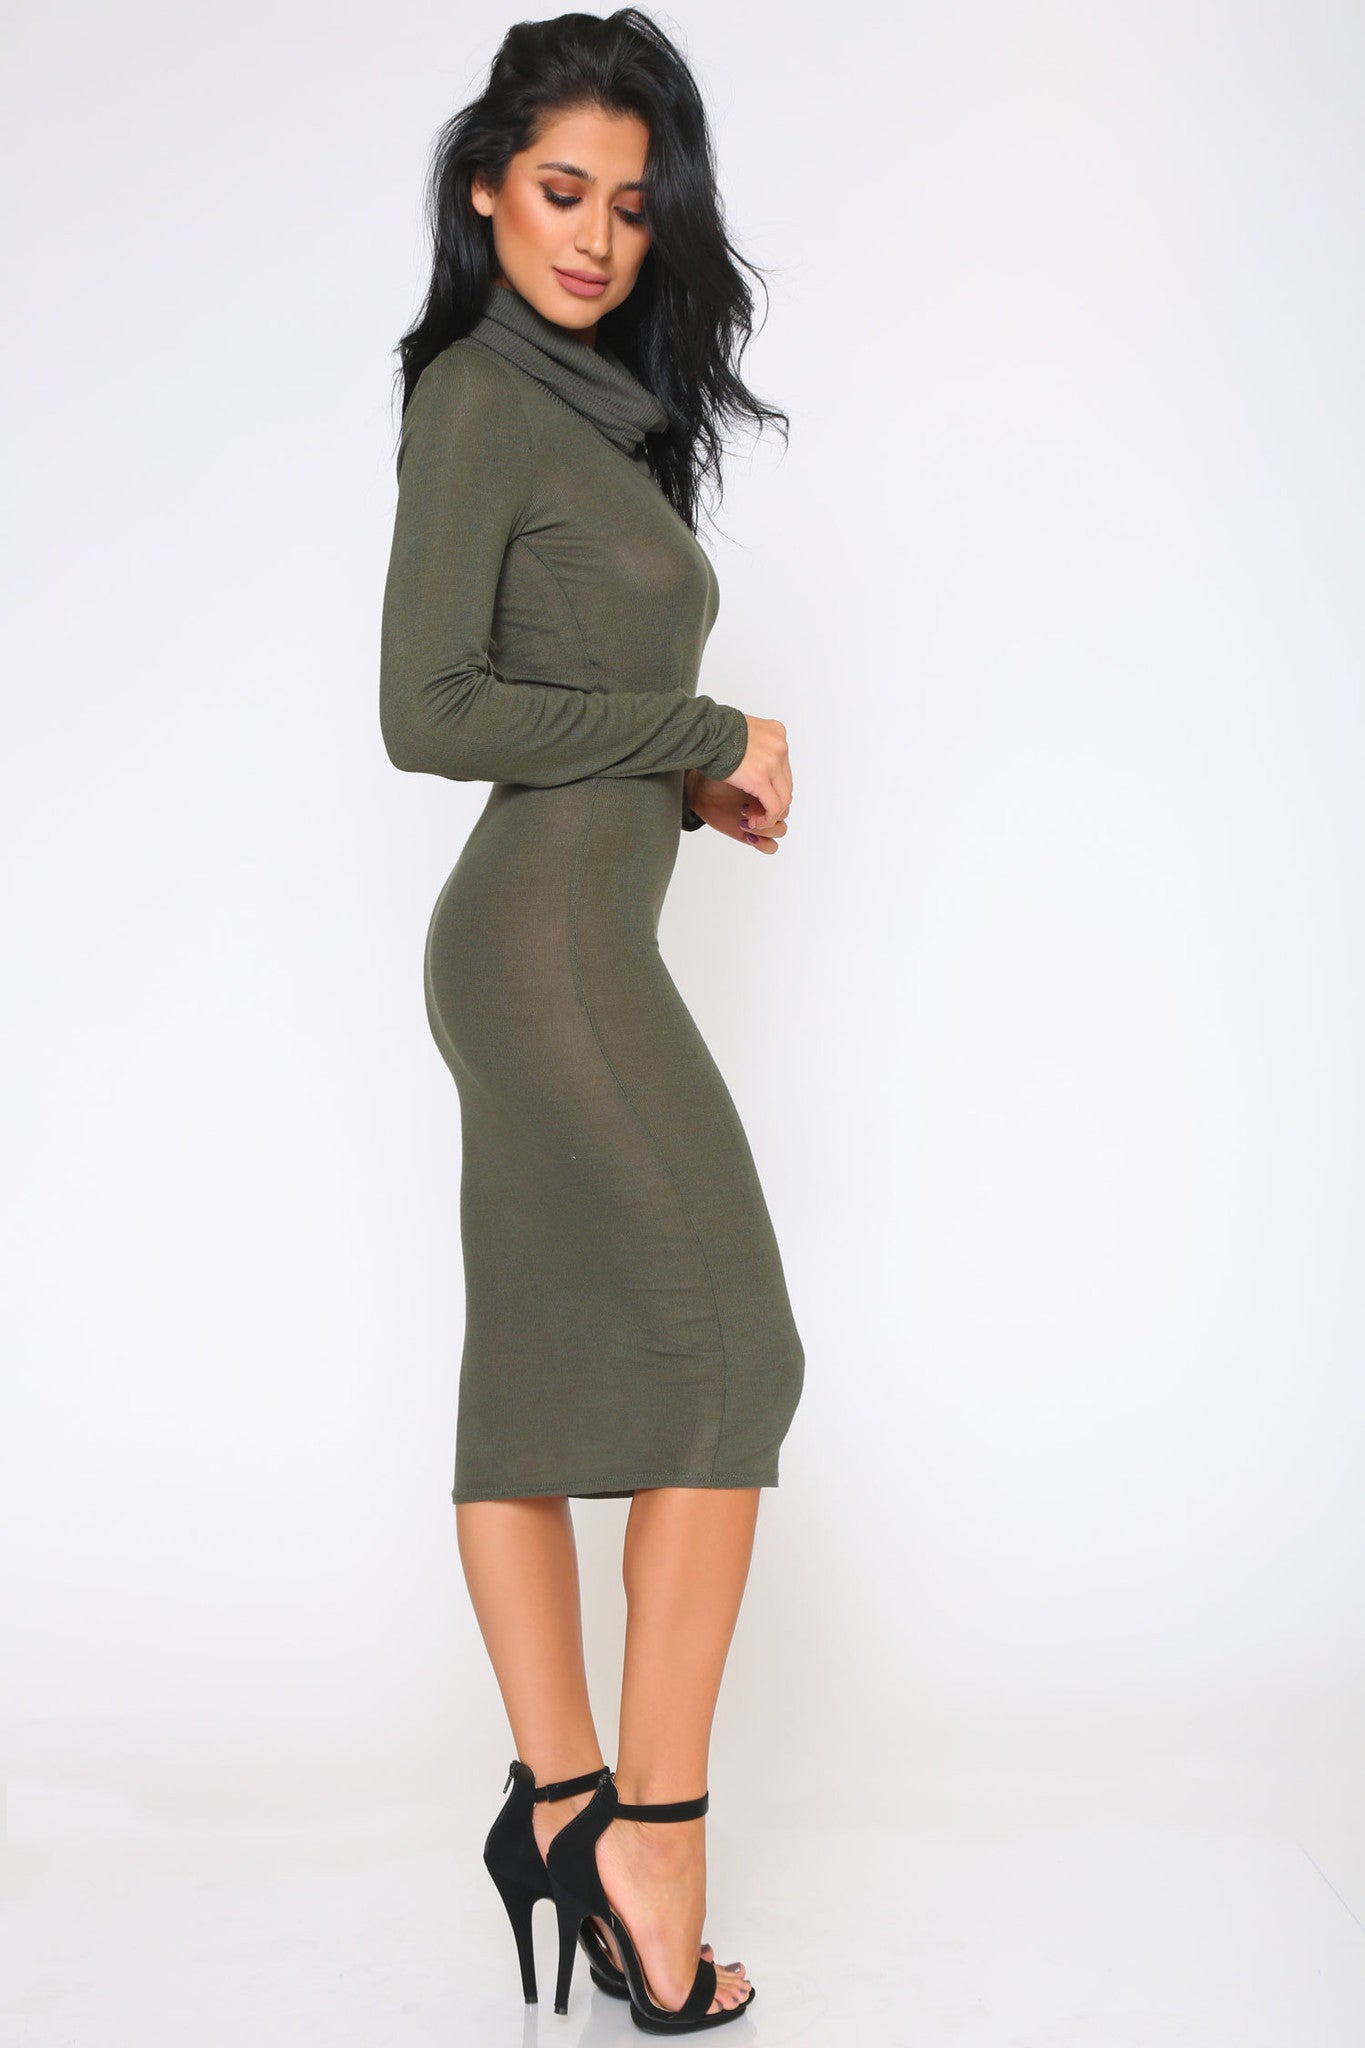 DELANEY DRESS - Glam Envy - 1